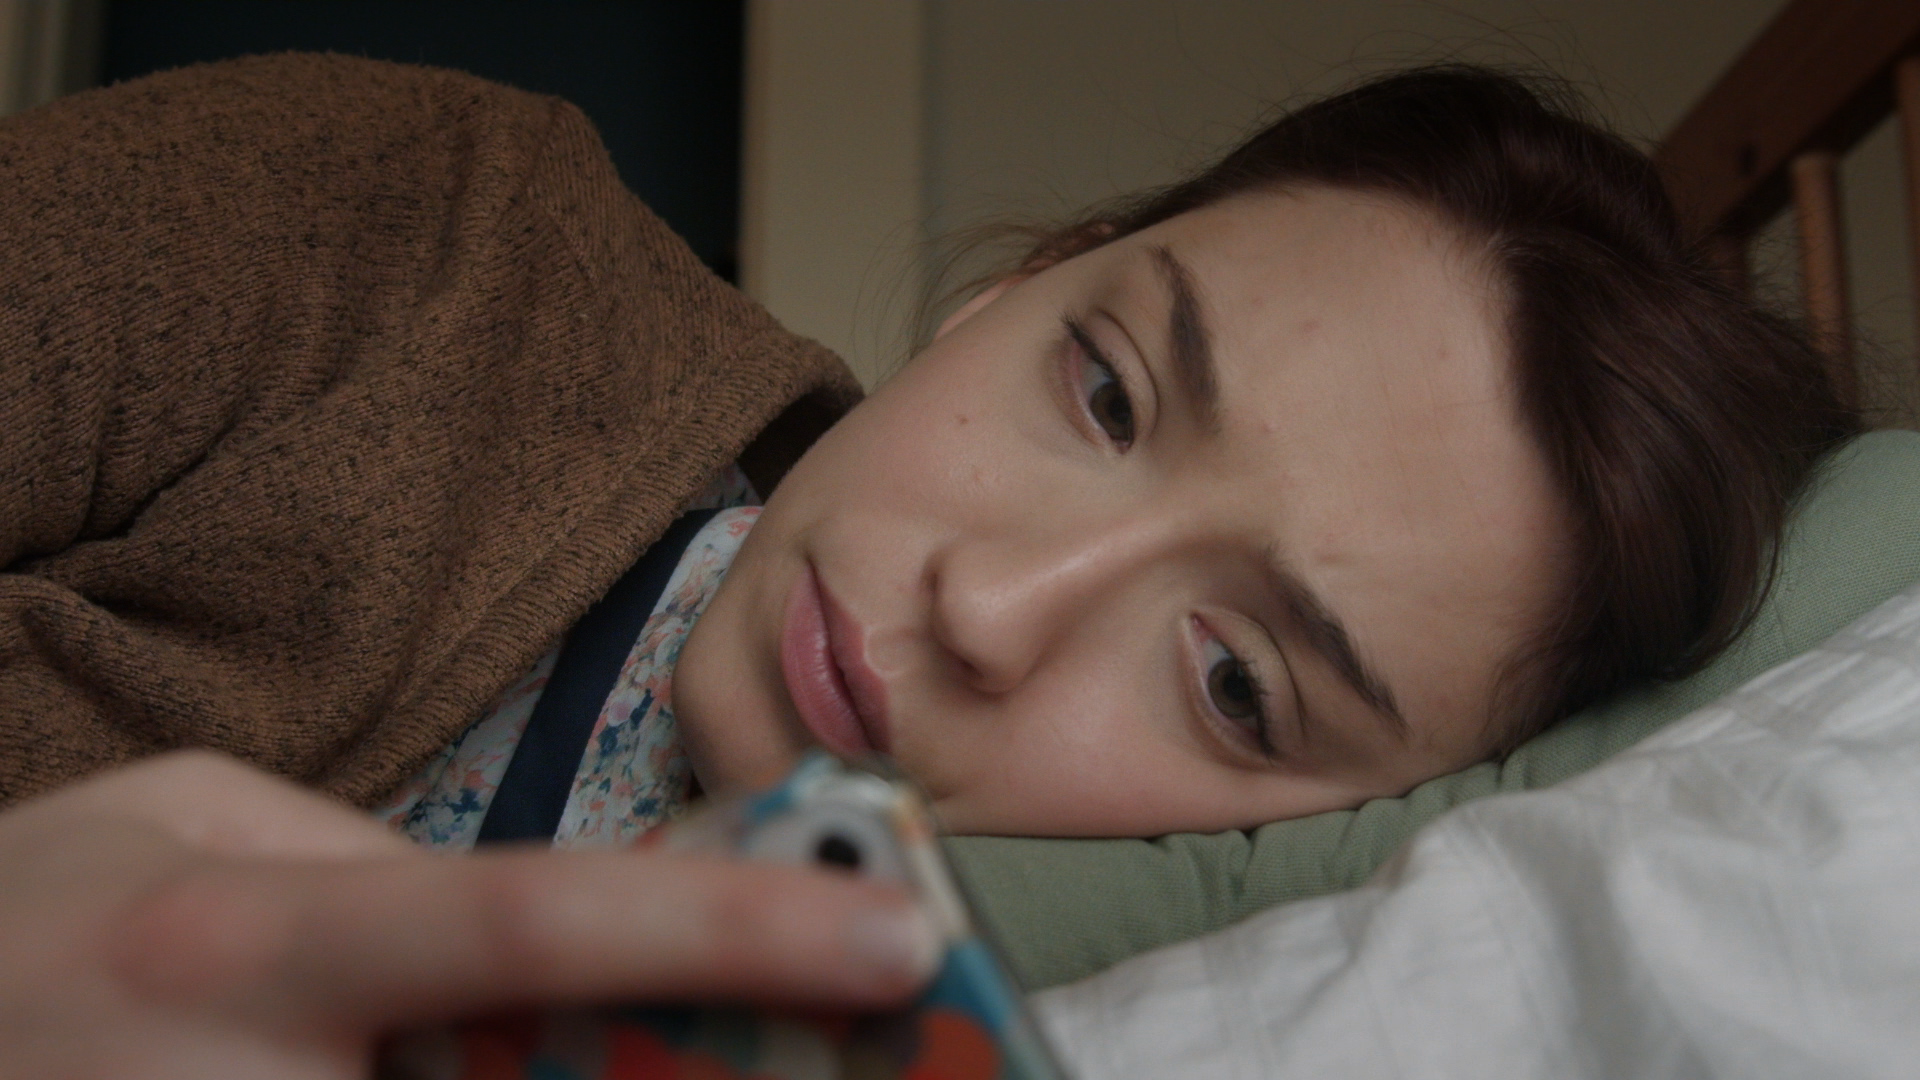 Dolore - lying down looking at phone.png